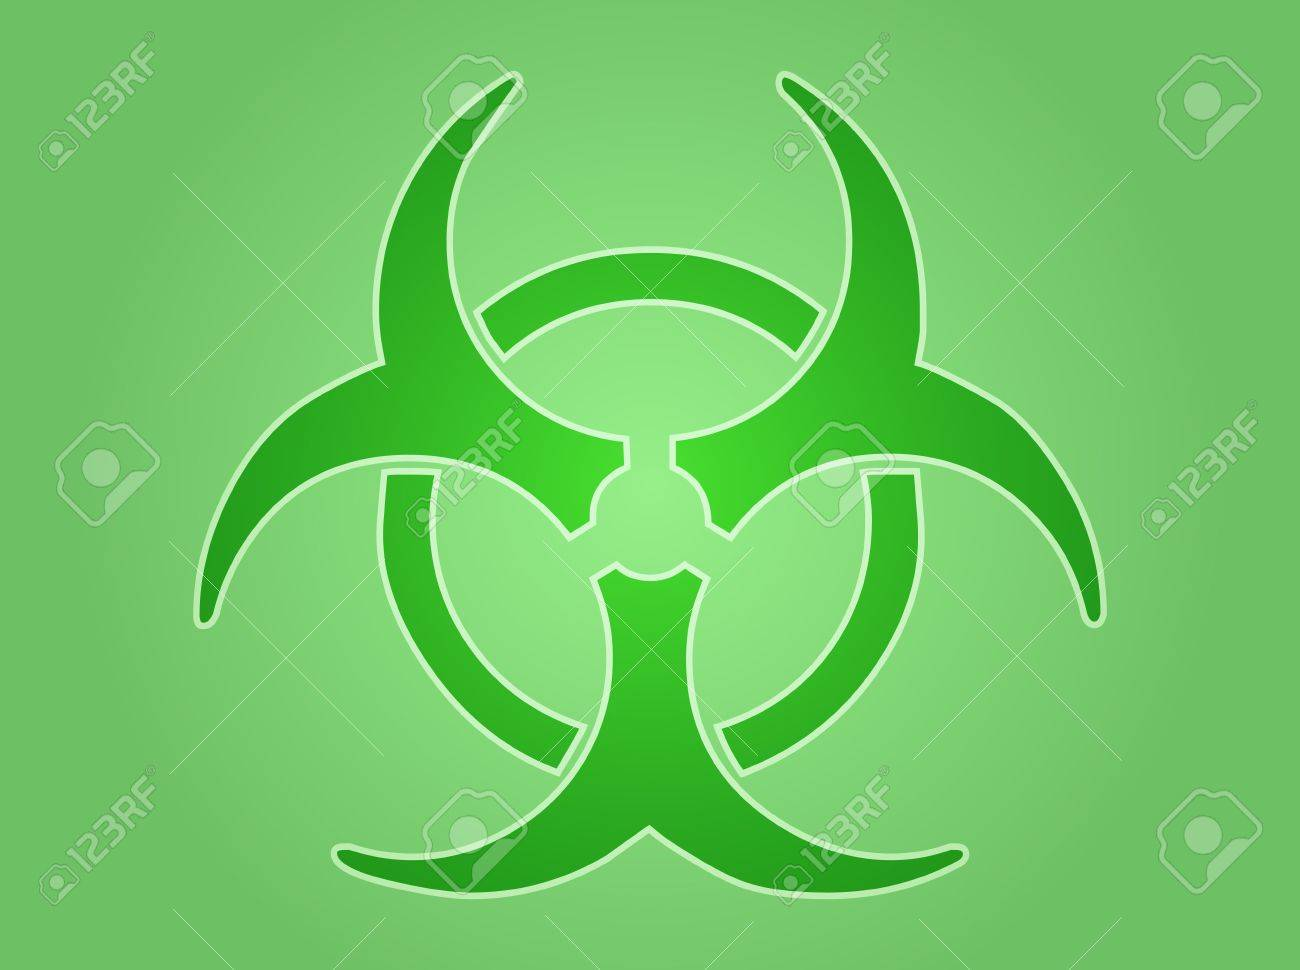 Biohazard sign, warning alert for hazardous bio materials Stock Photo - 6476647